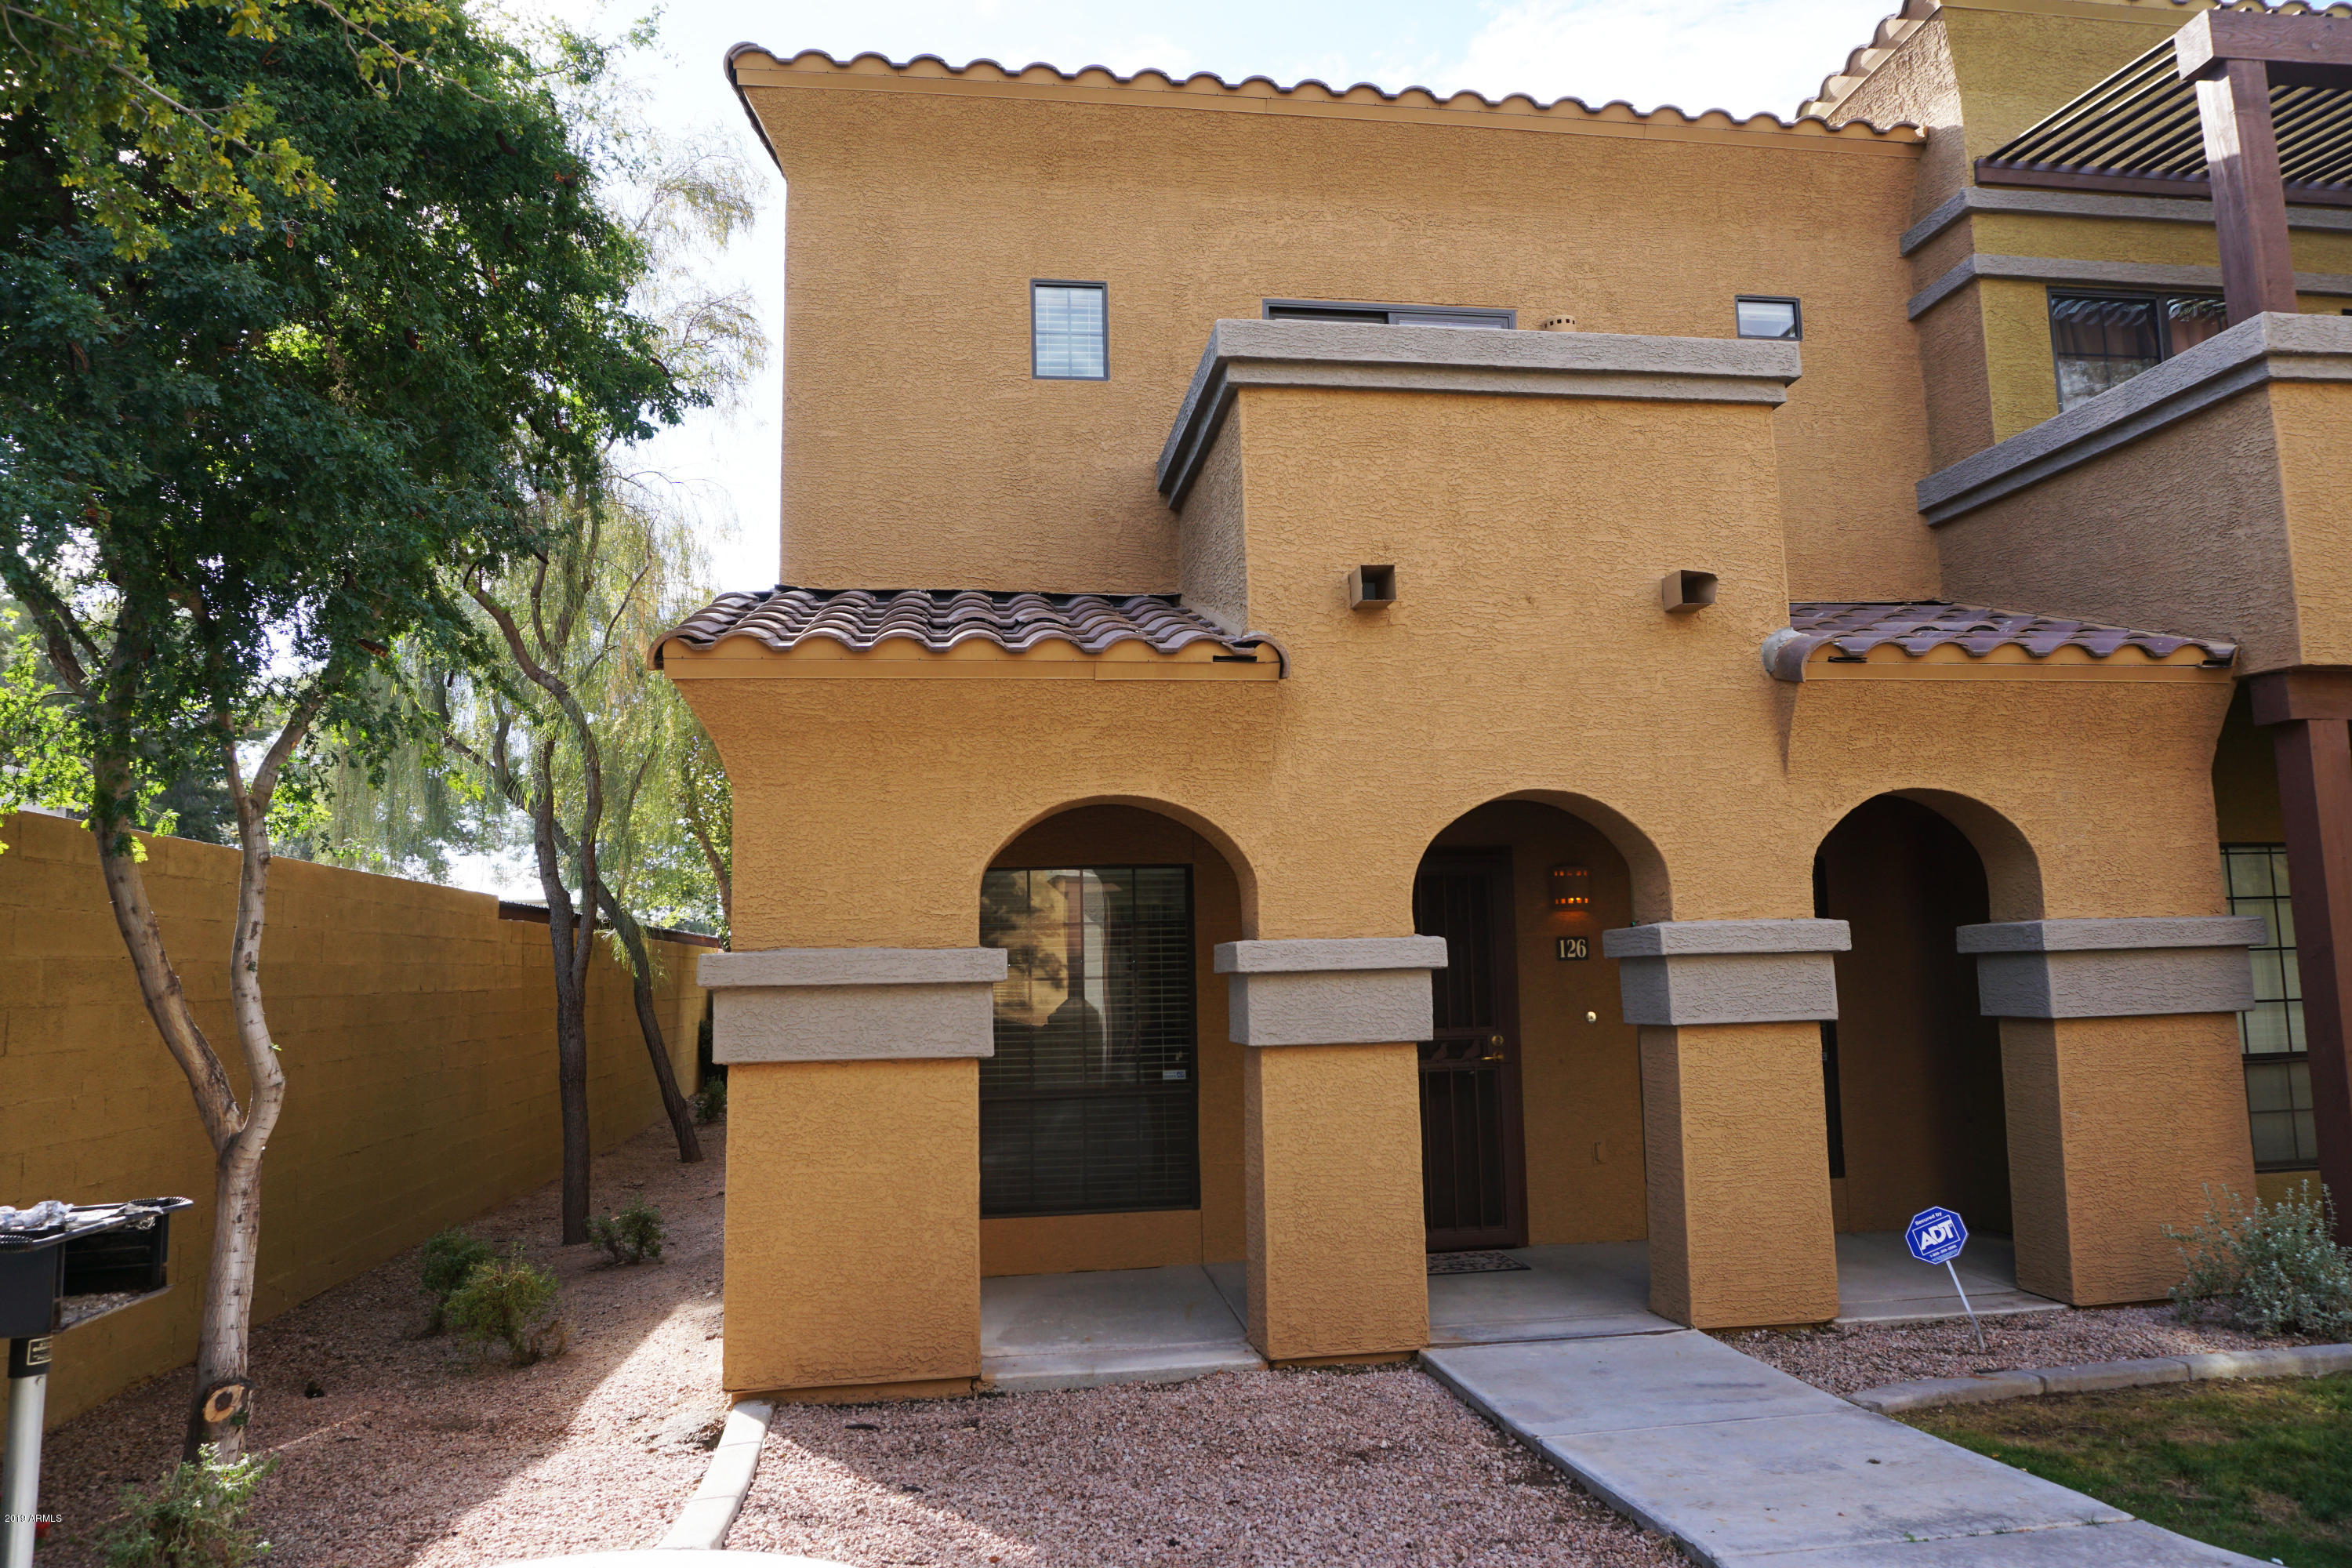 Photo of 1702 E BELL Road #126, Phoenix, AZ 85022